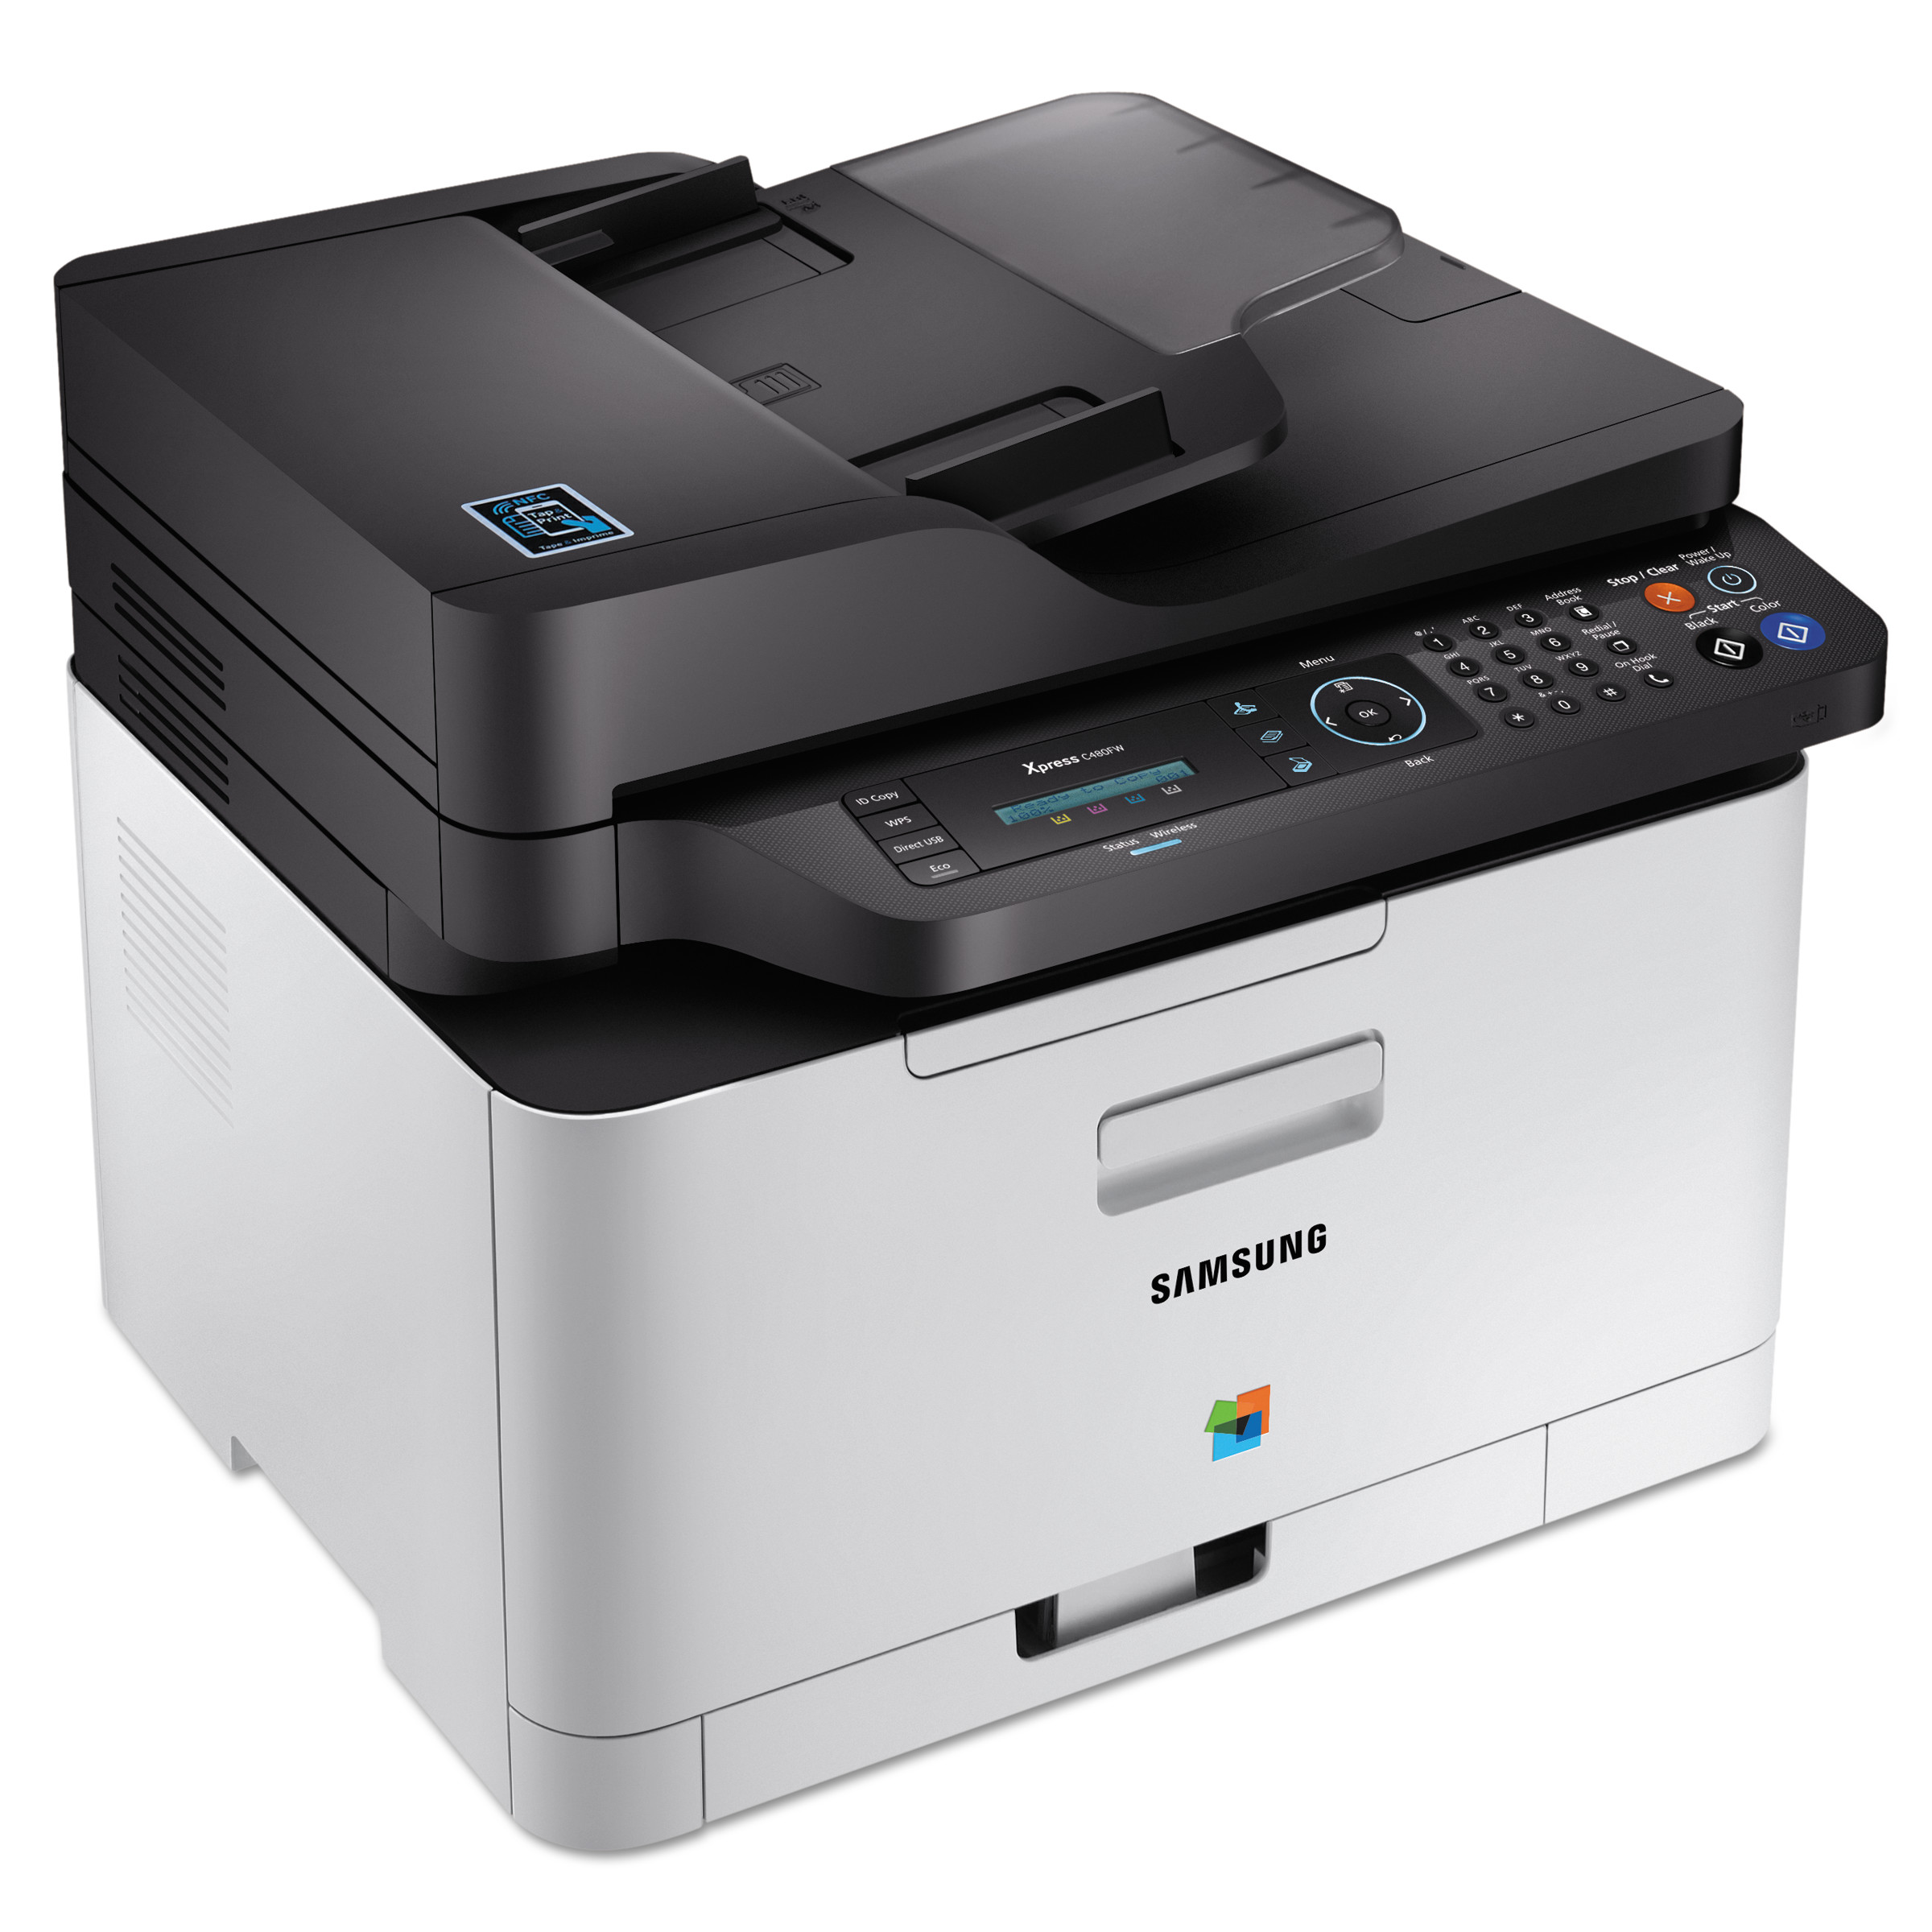 Samsung Xpress SL-C480FW Wireless Color Laser Multifunction Printer, Copy/Fax/Print/Scan